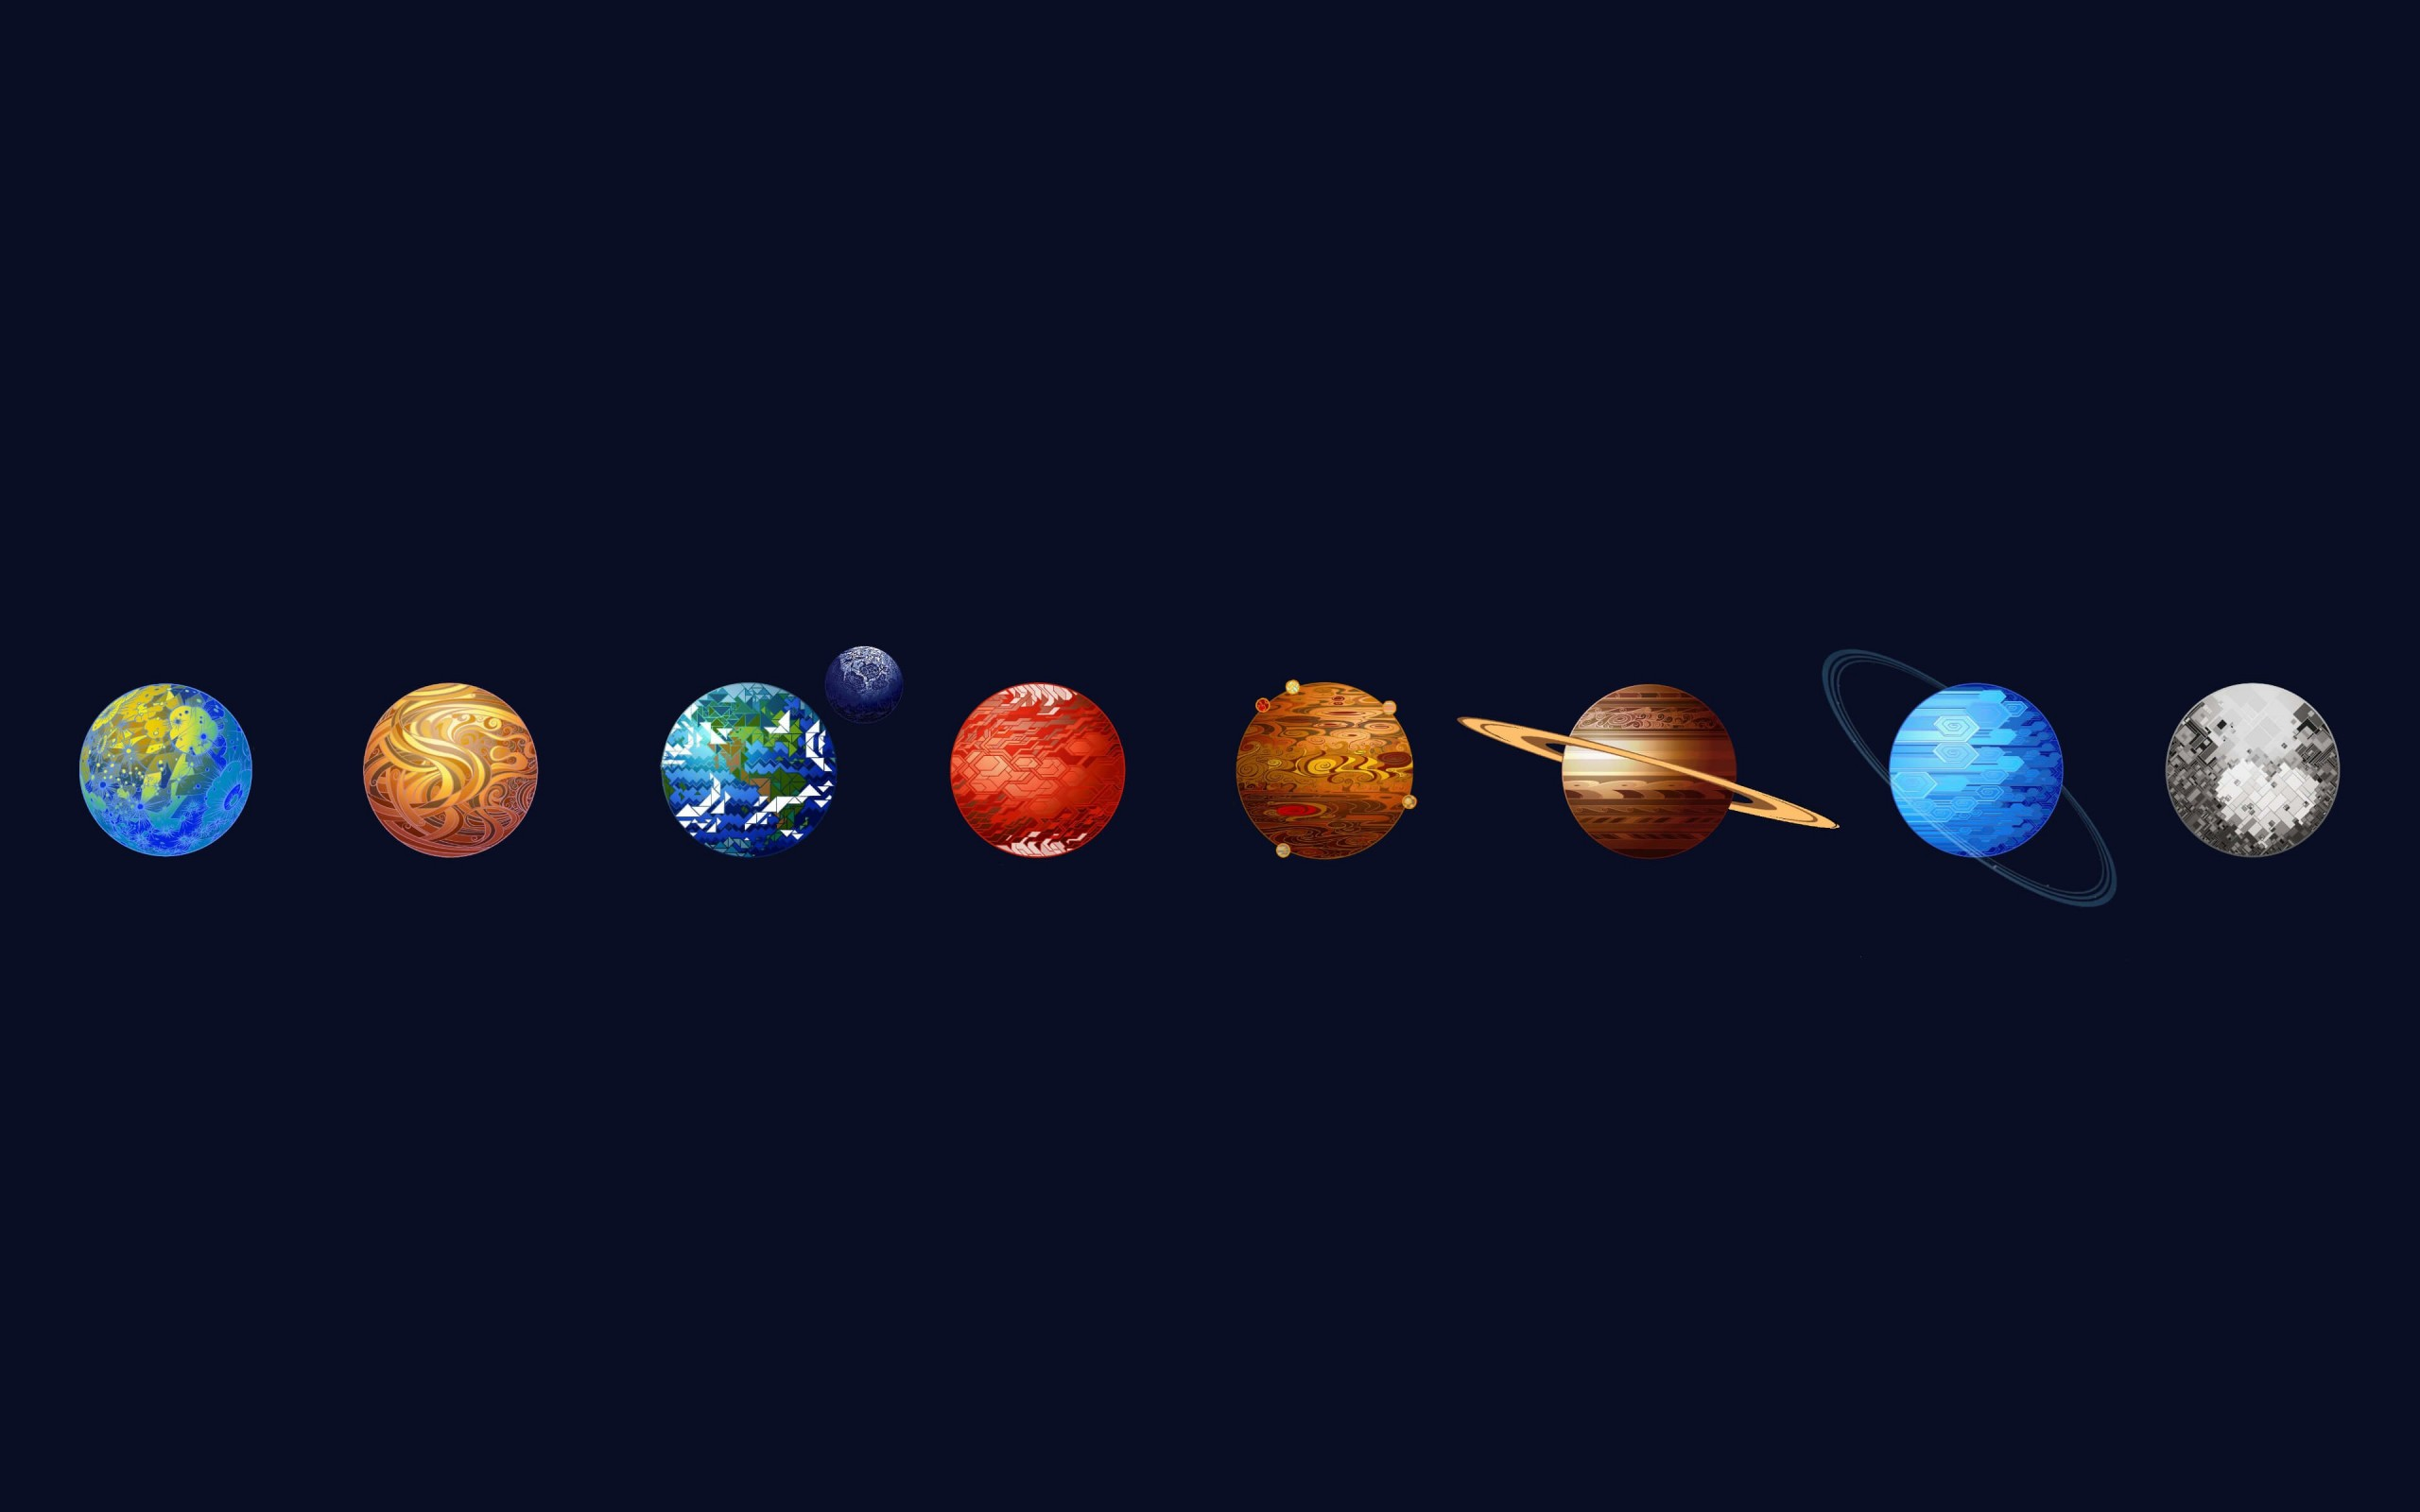 Solar System Wallpaper for Desktop 2560x1600